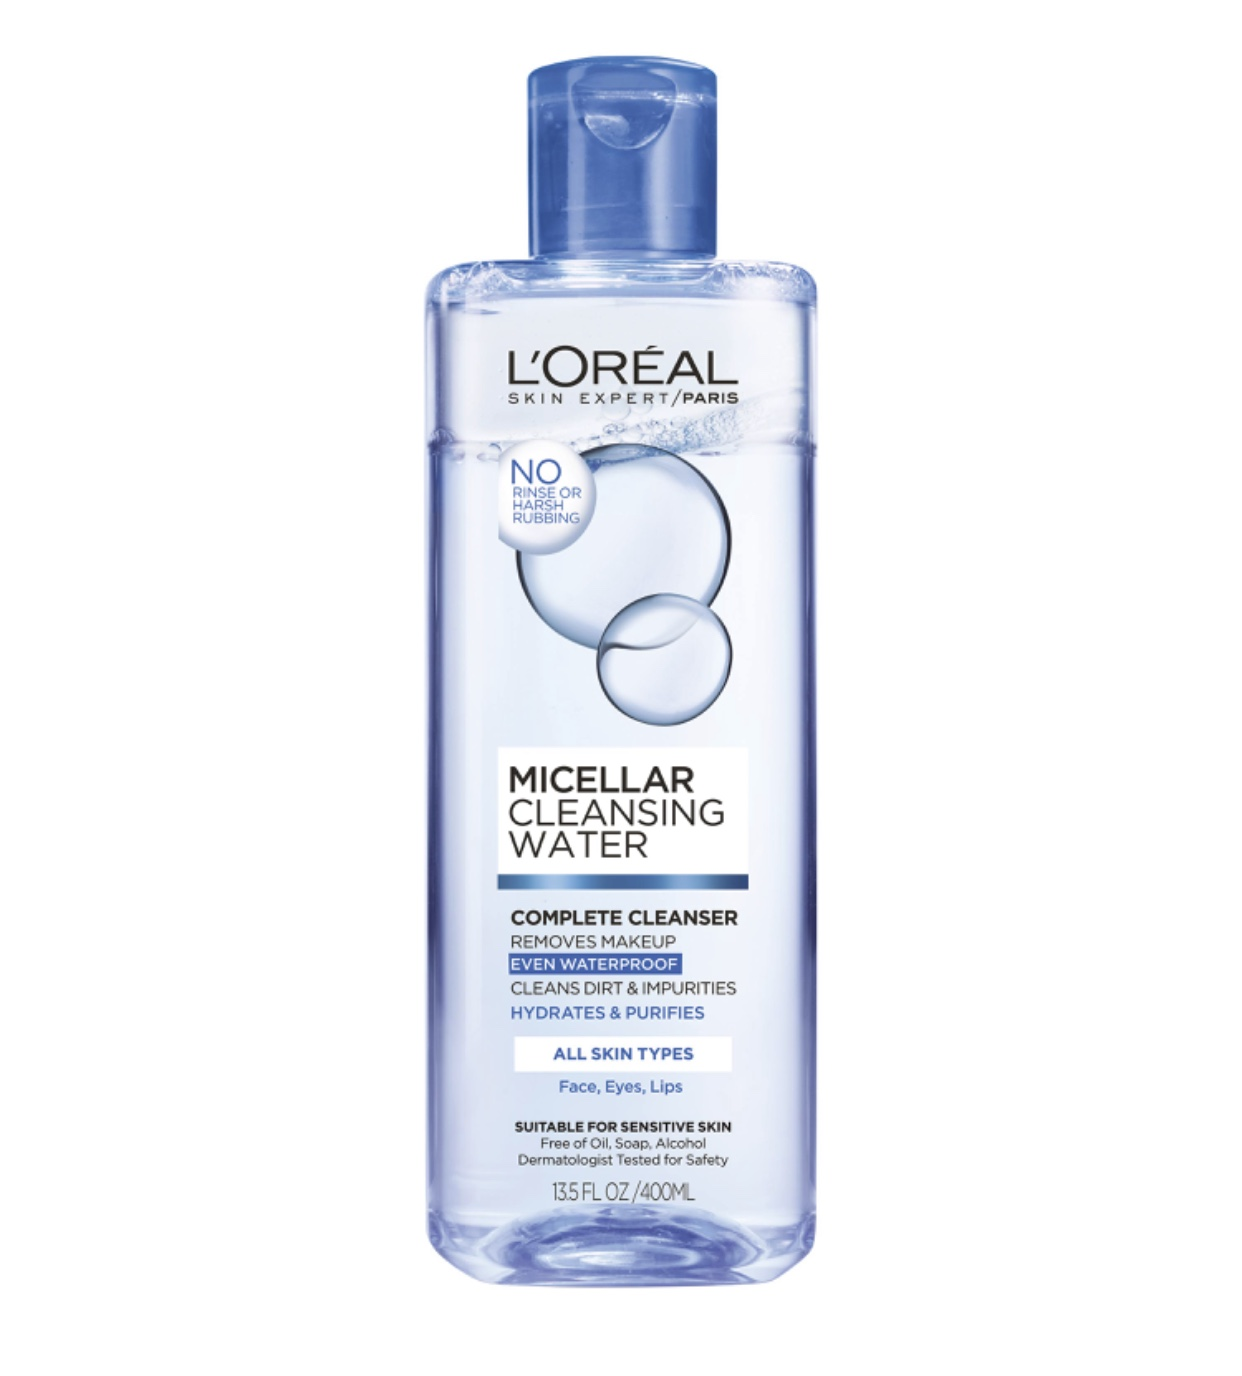 L'Oreal Micellar Cleansing Water Complete Cleanser for a quick cleansing option